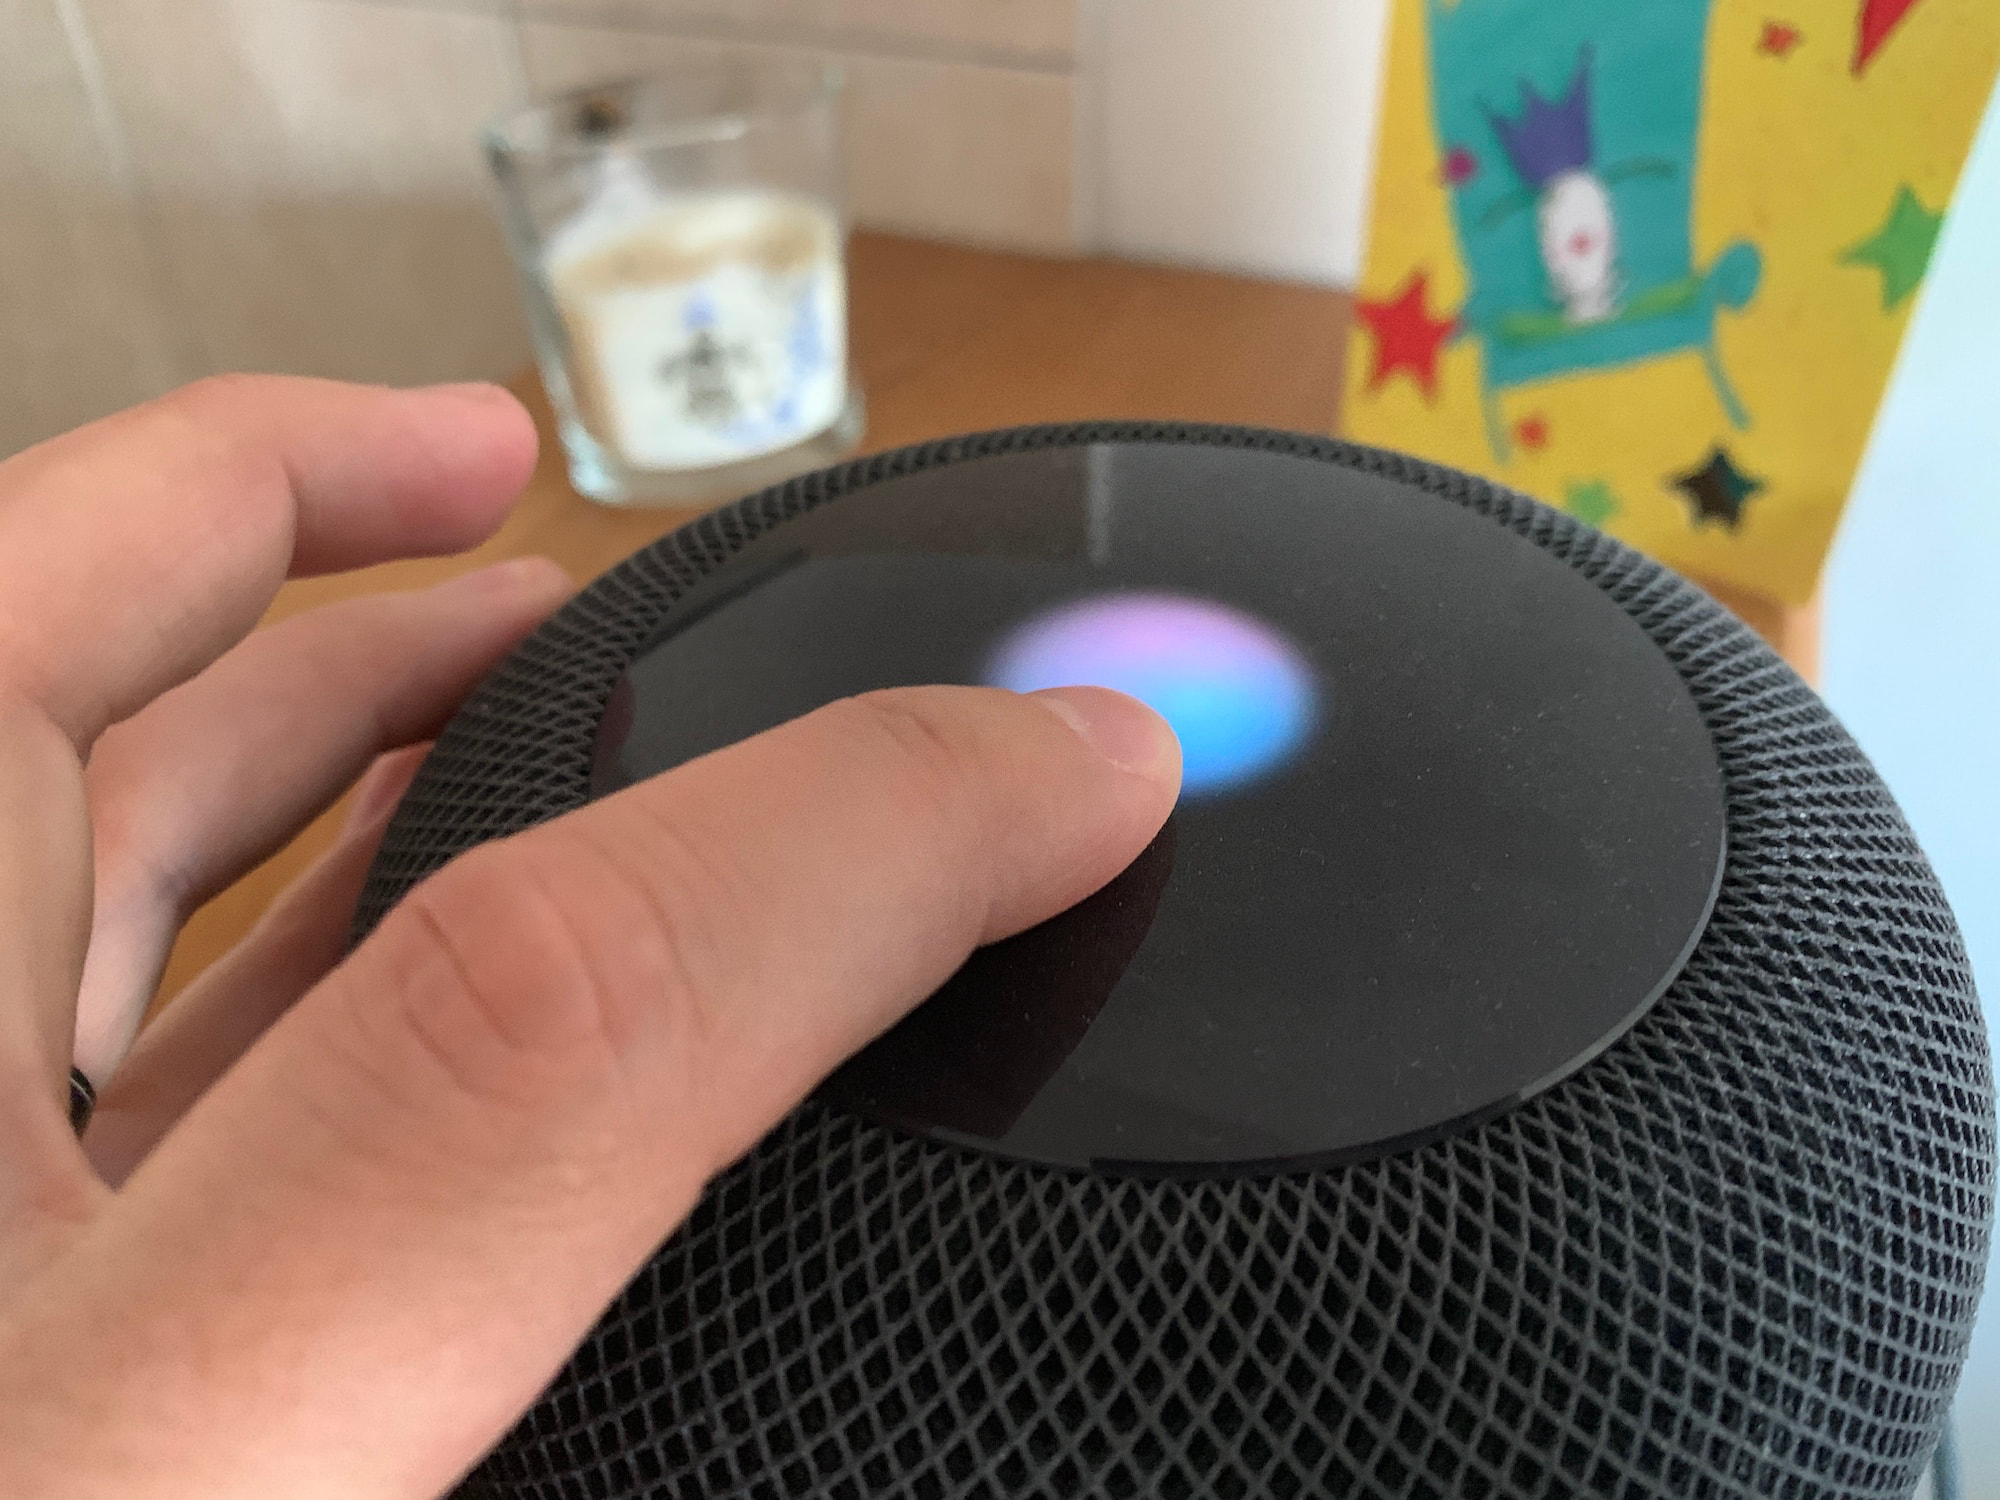 Transfer phone calls from iPhone to HomePod